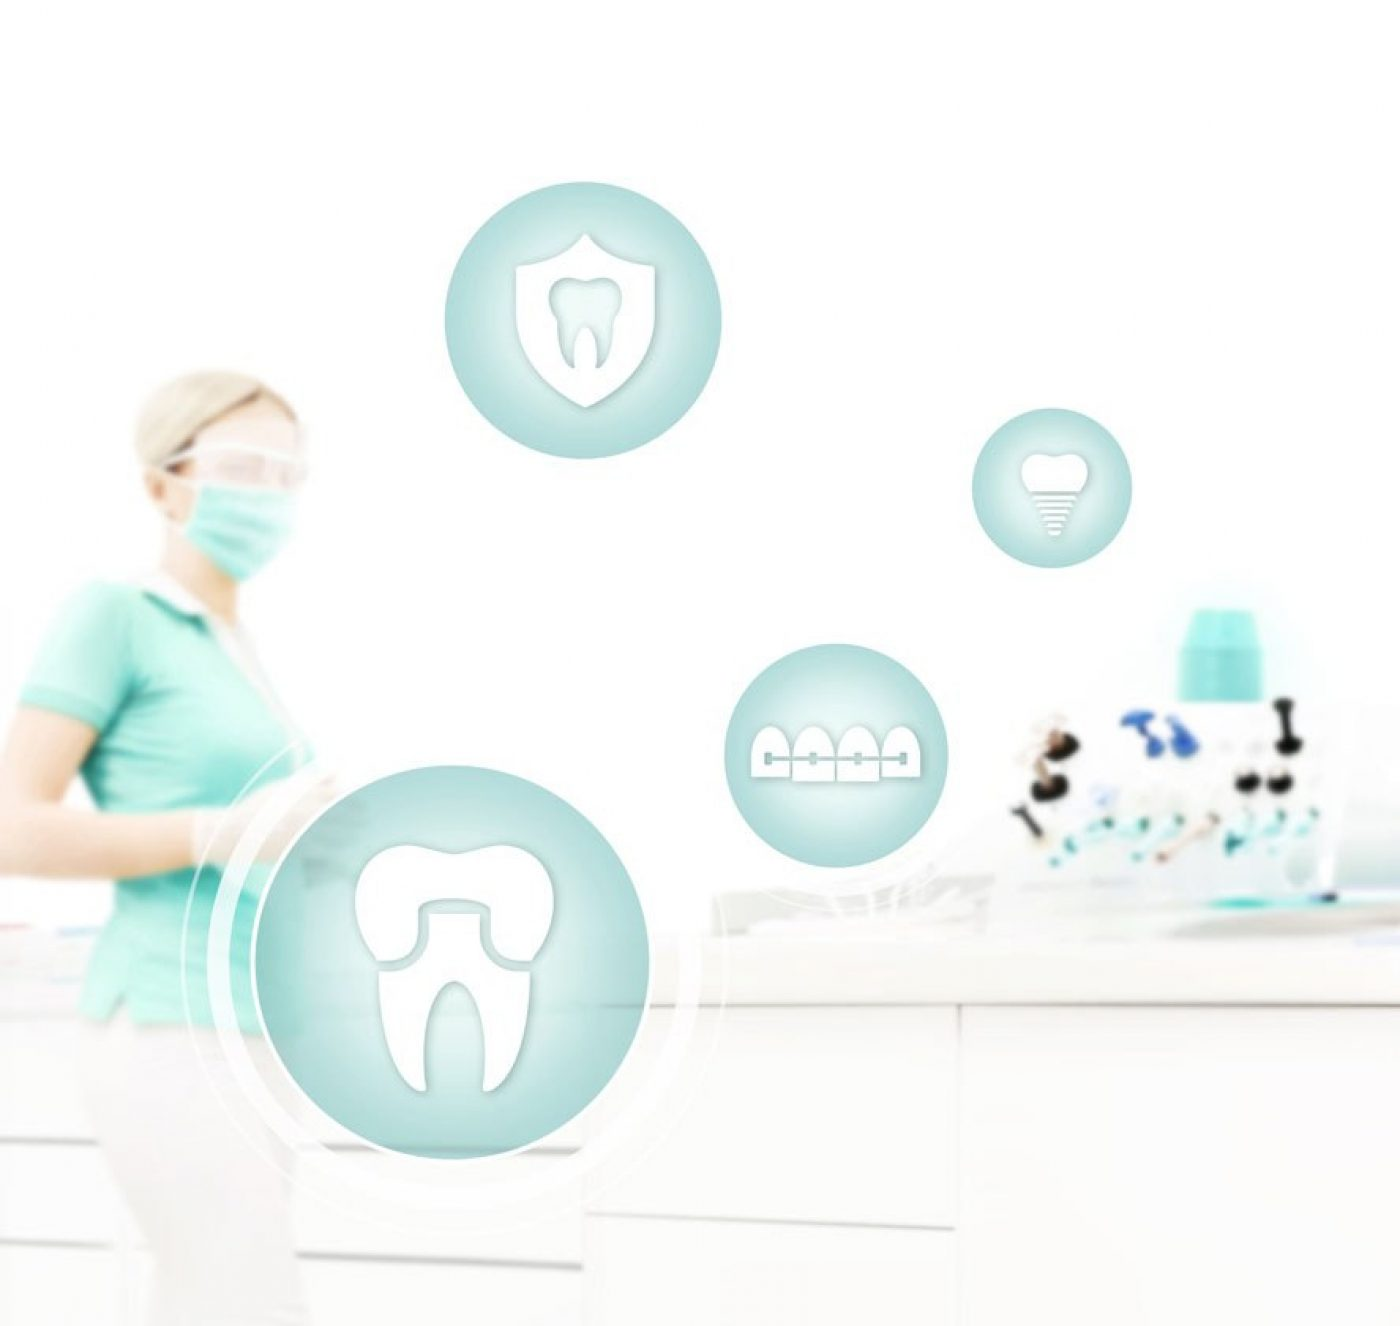 Stm Advicecare Commondentalconditions